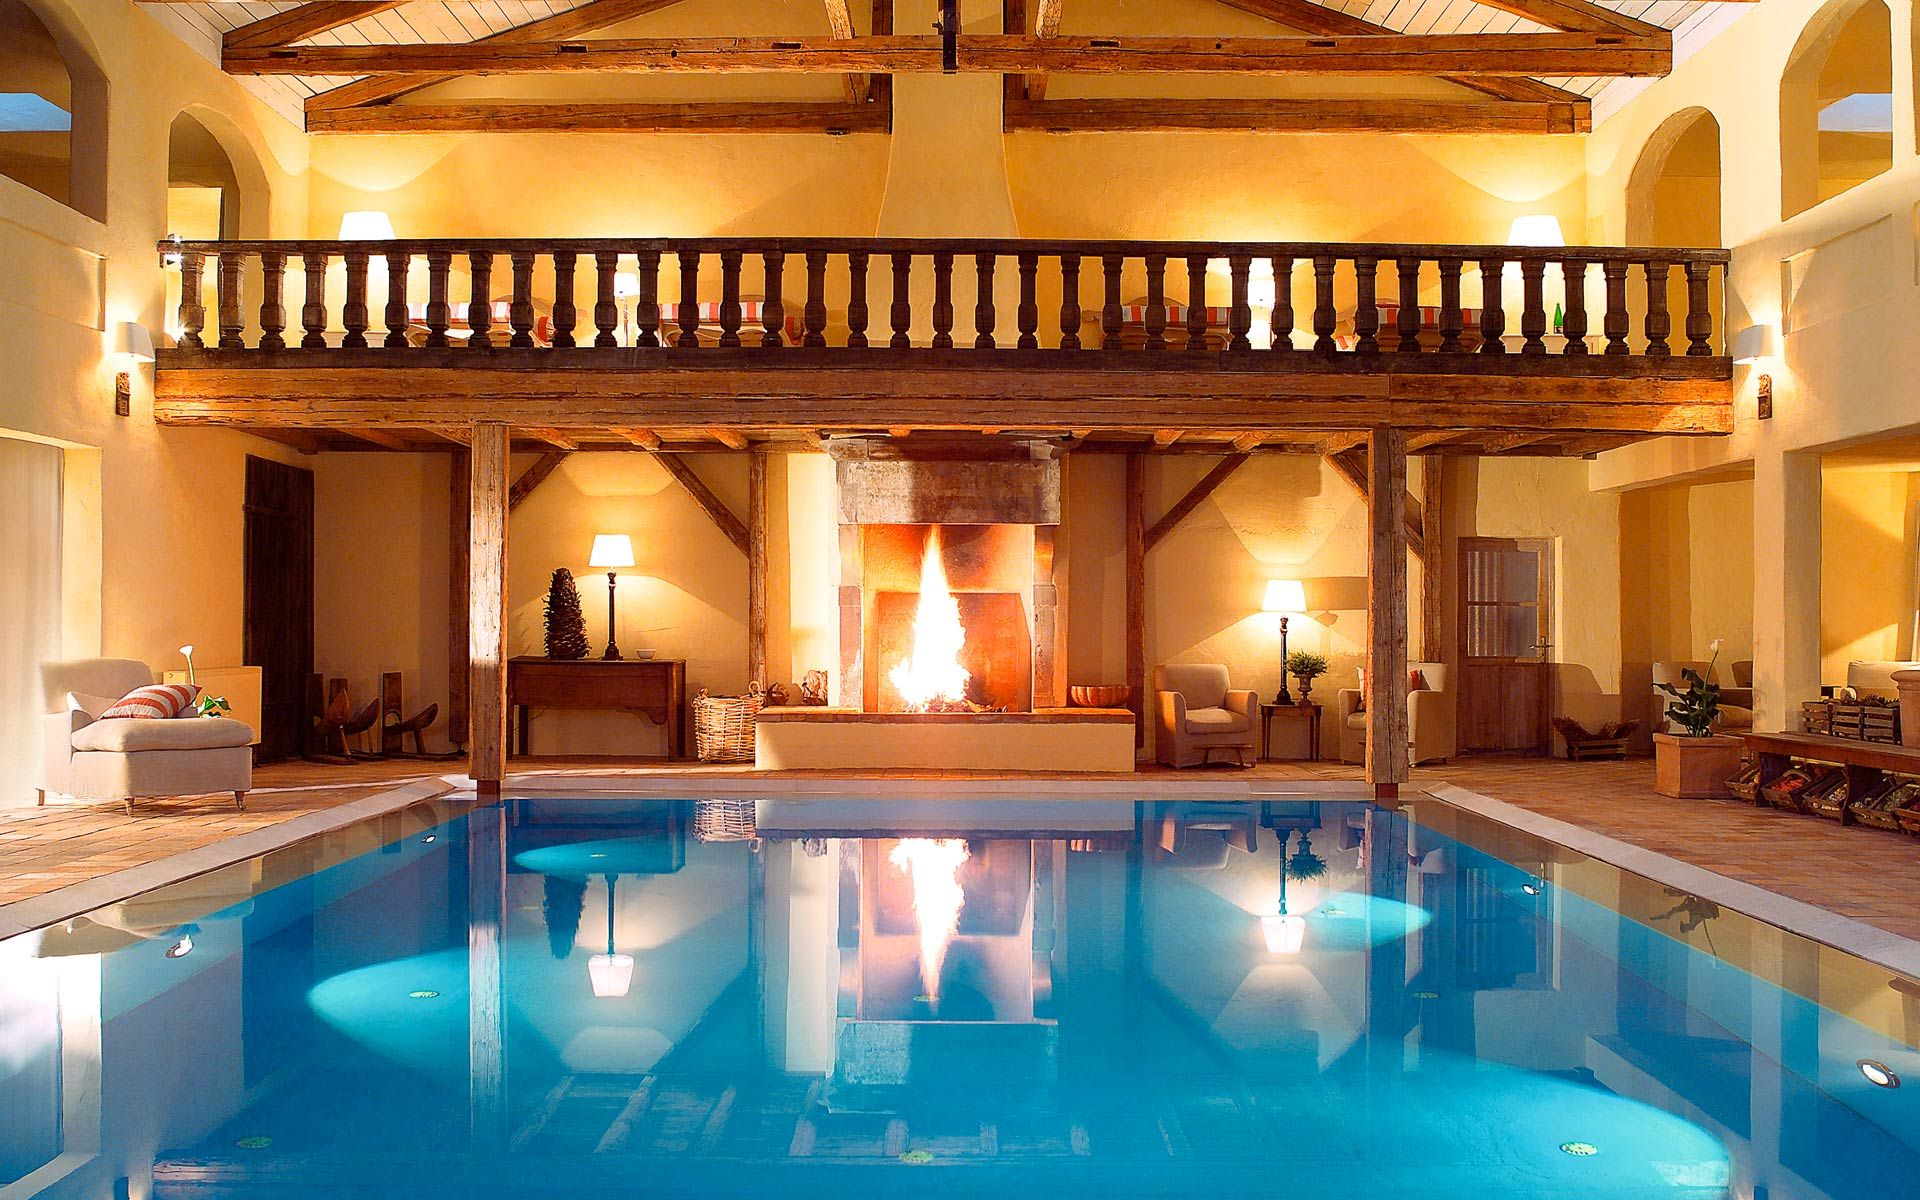 zur bleiche burg spreewald great spa very good restaurants nice rooms does not accept any. Black Bedroom Furniture Sets. Home Design Ideas